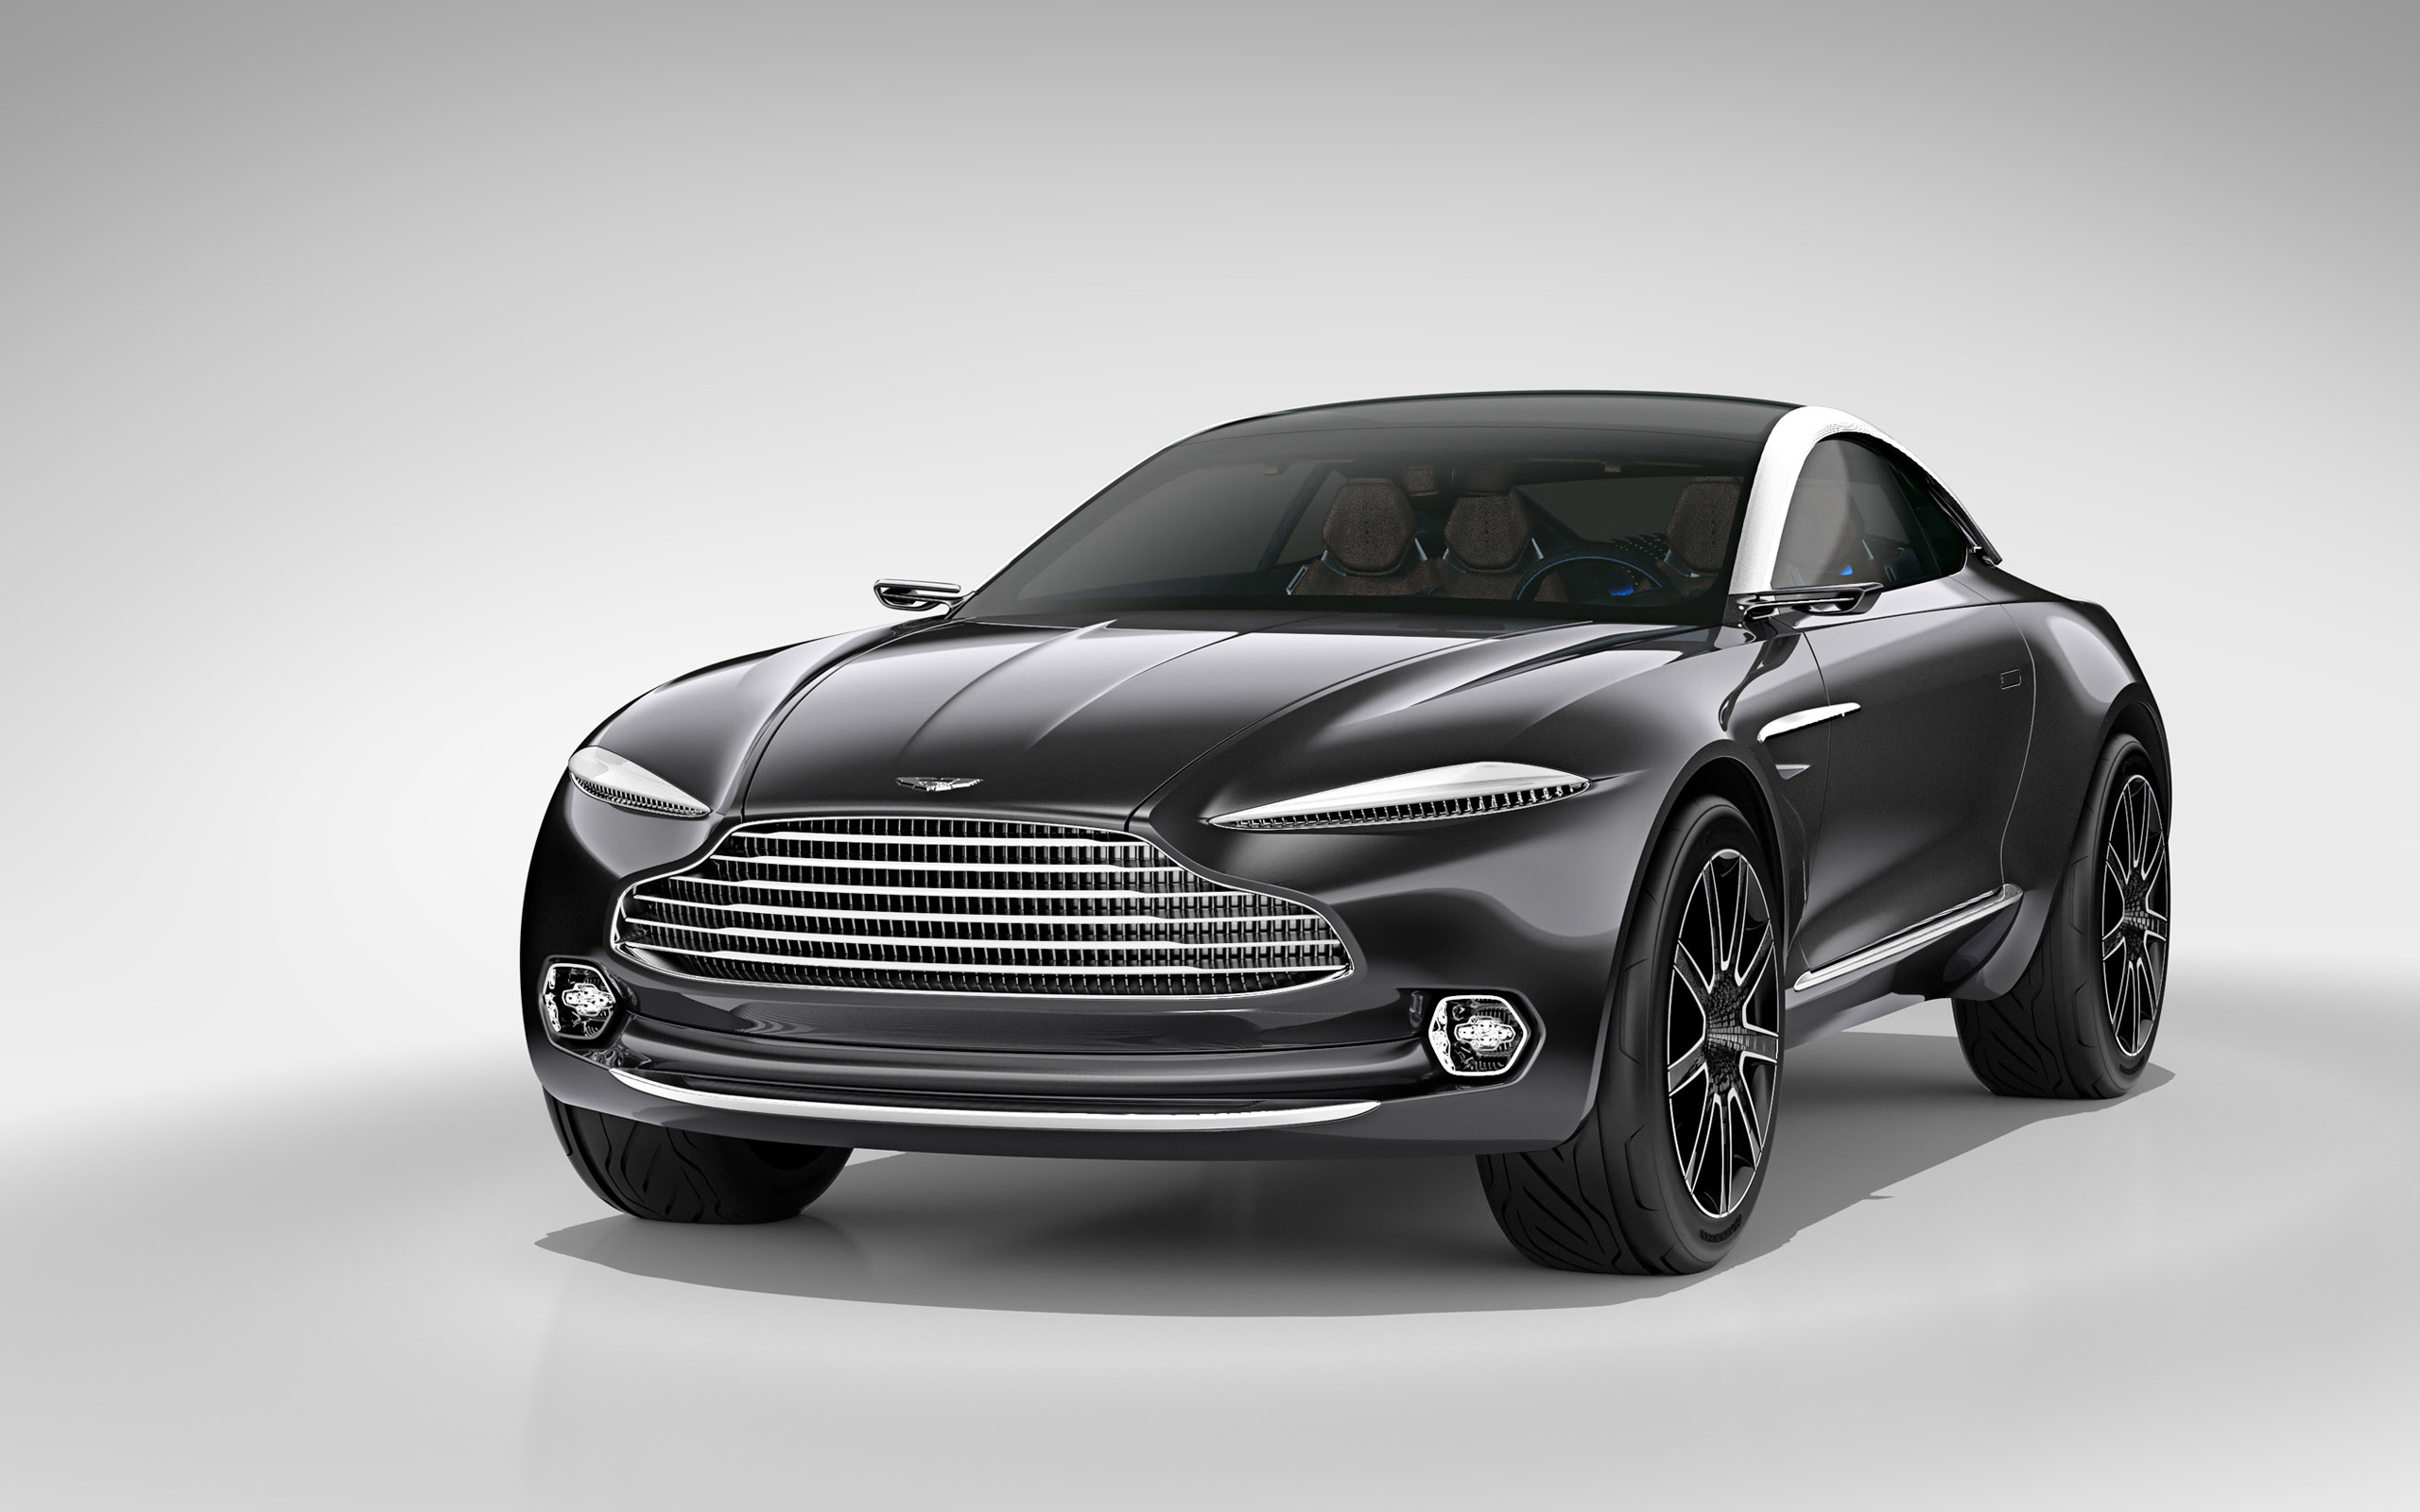 2015 Aston Martin DBX Concept Wallpapers